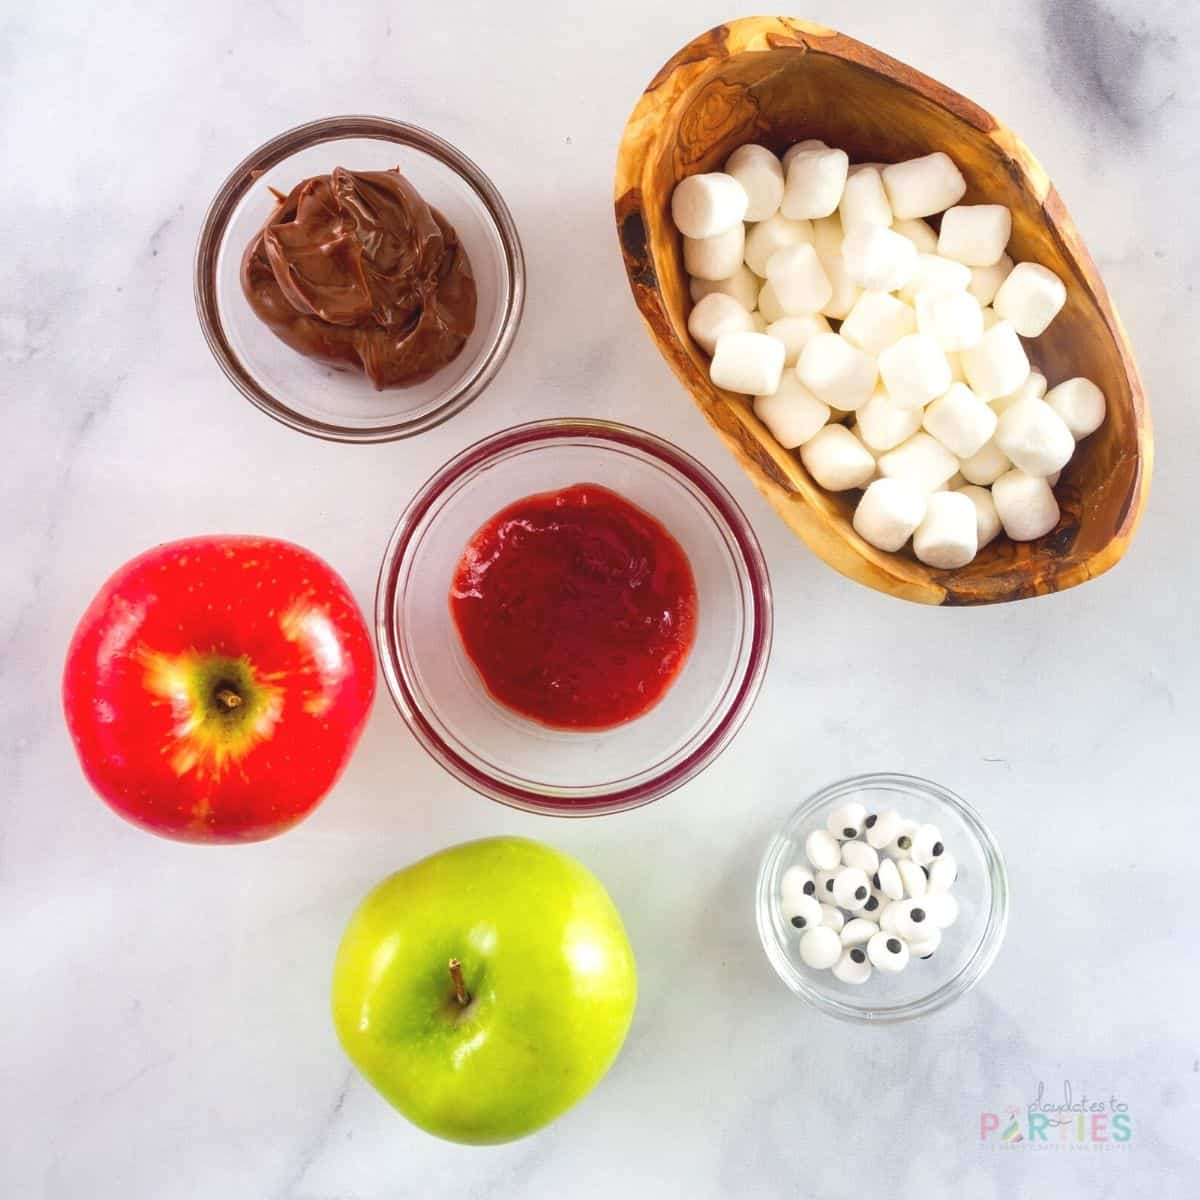 ingredients for making monster Halloween treats from apples